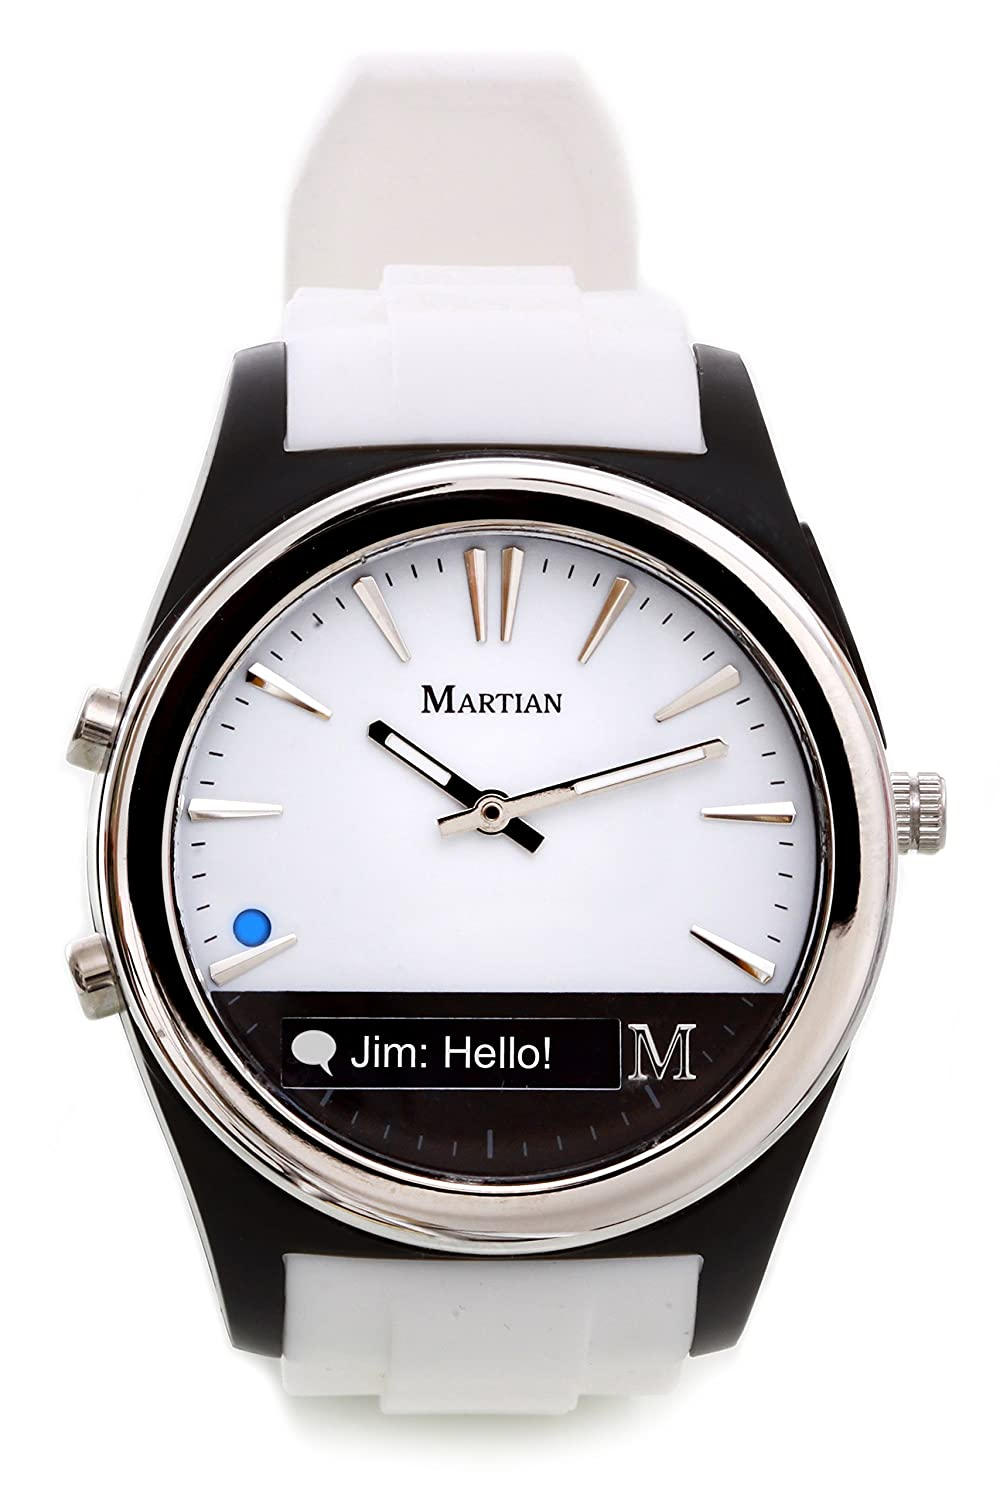 Upto 20% off Or More Off on Unique & Innovative products By Amazon   Martian Analog White Dial Unisex Watch - MN200WBW @ Rs.4,999